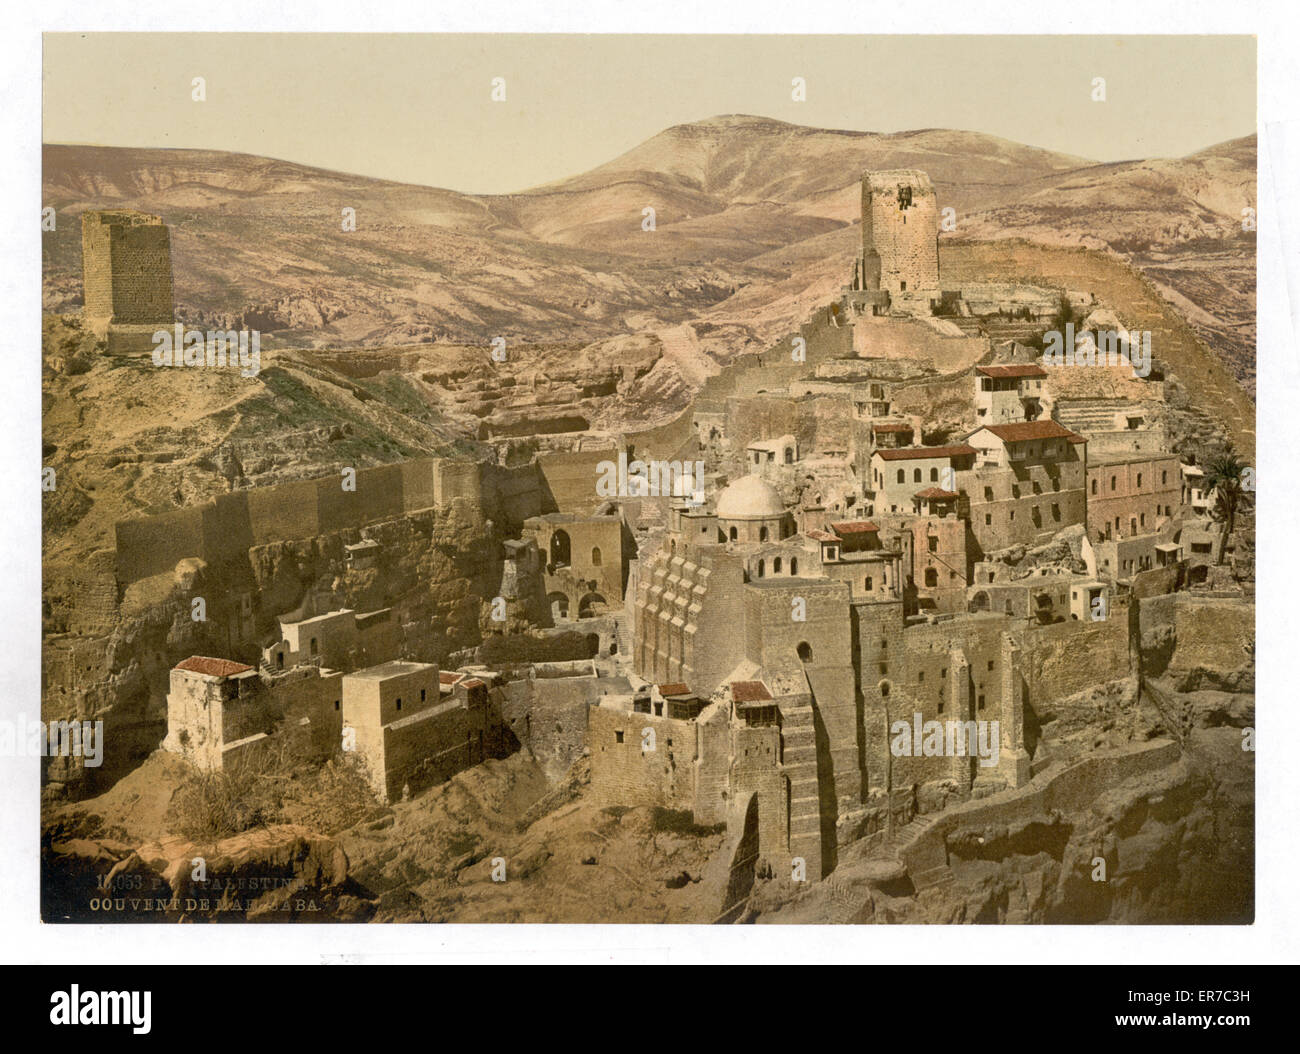 The convent, Mar-Saba, Holy Land, (i.e., West Bank). Date between ca. 1890 and ca. 1900 - Stock Image